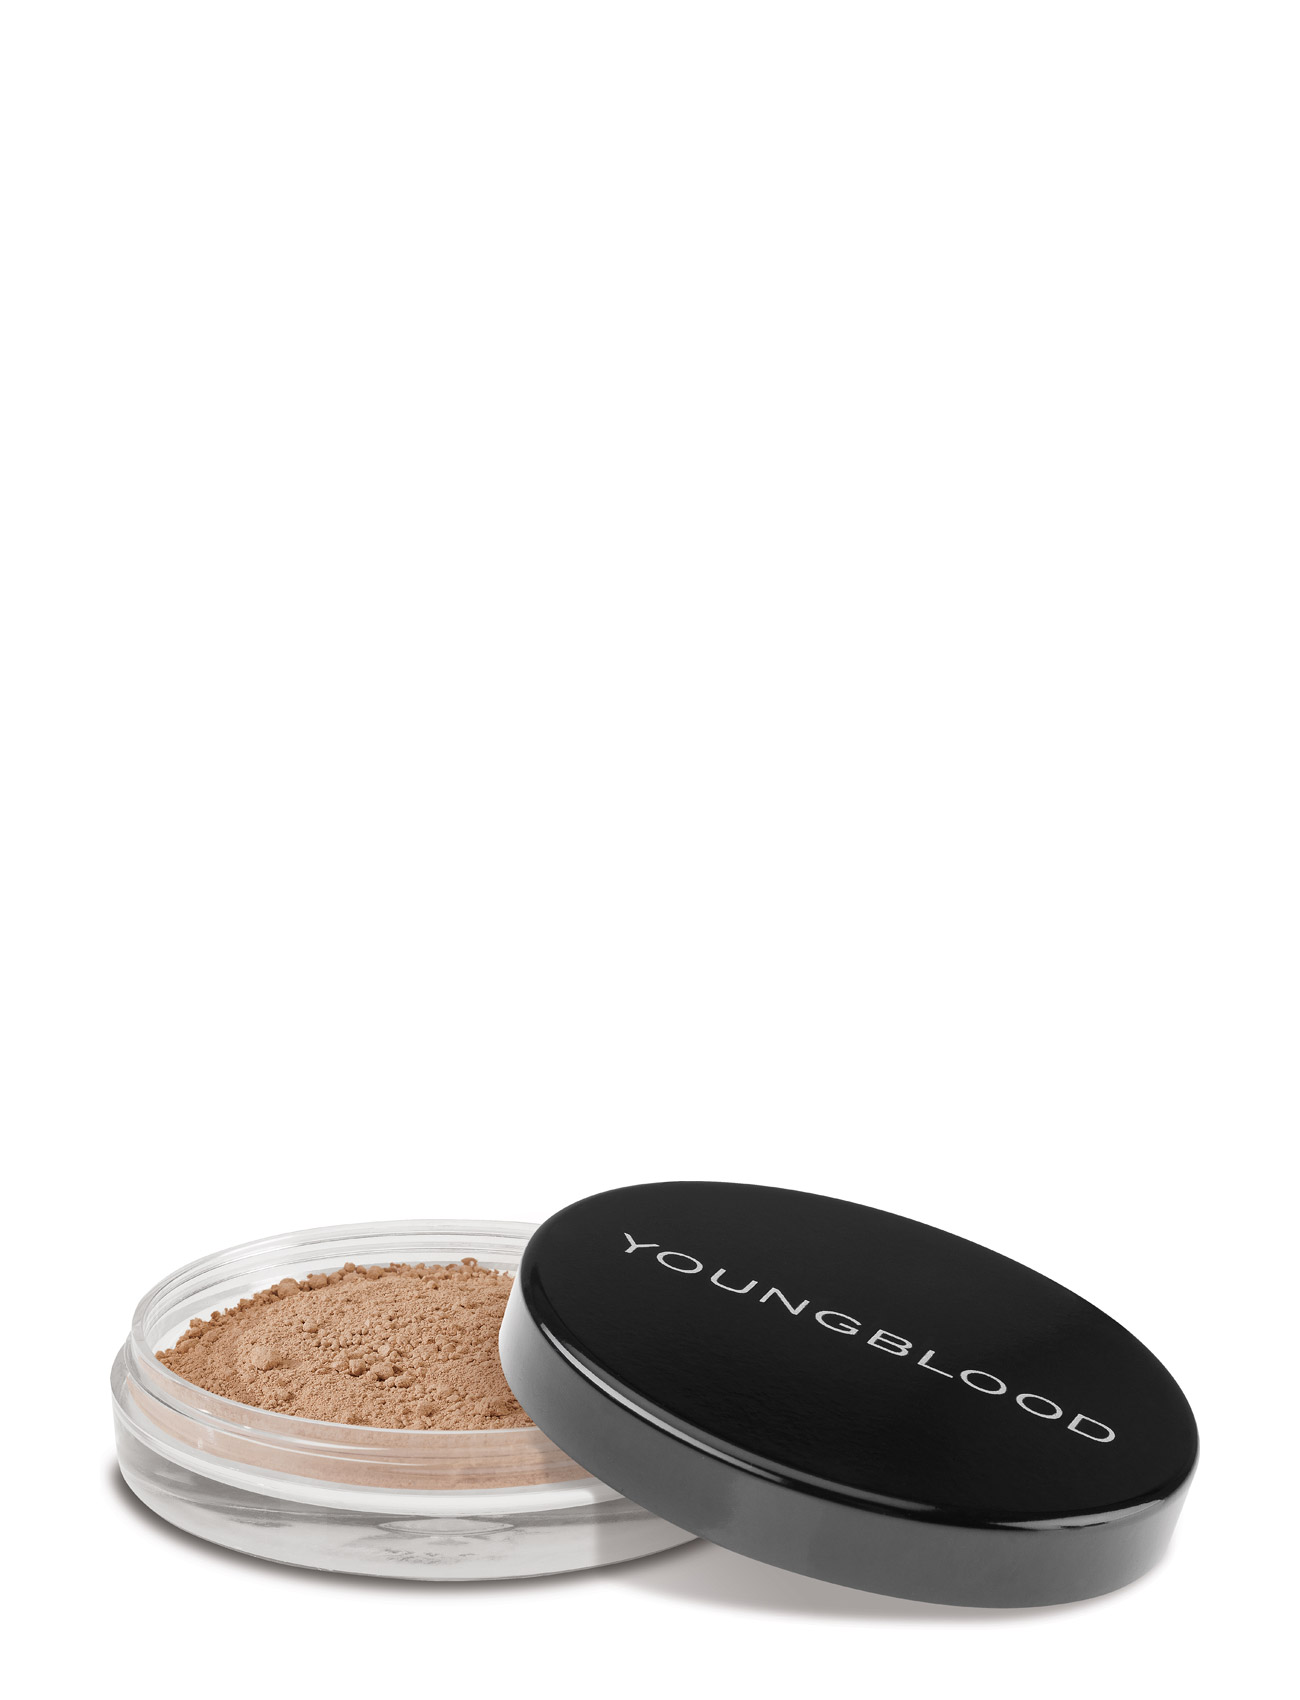 youngblood – Youngblood loose mineral foundation på boozt.com dk